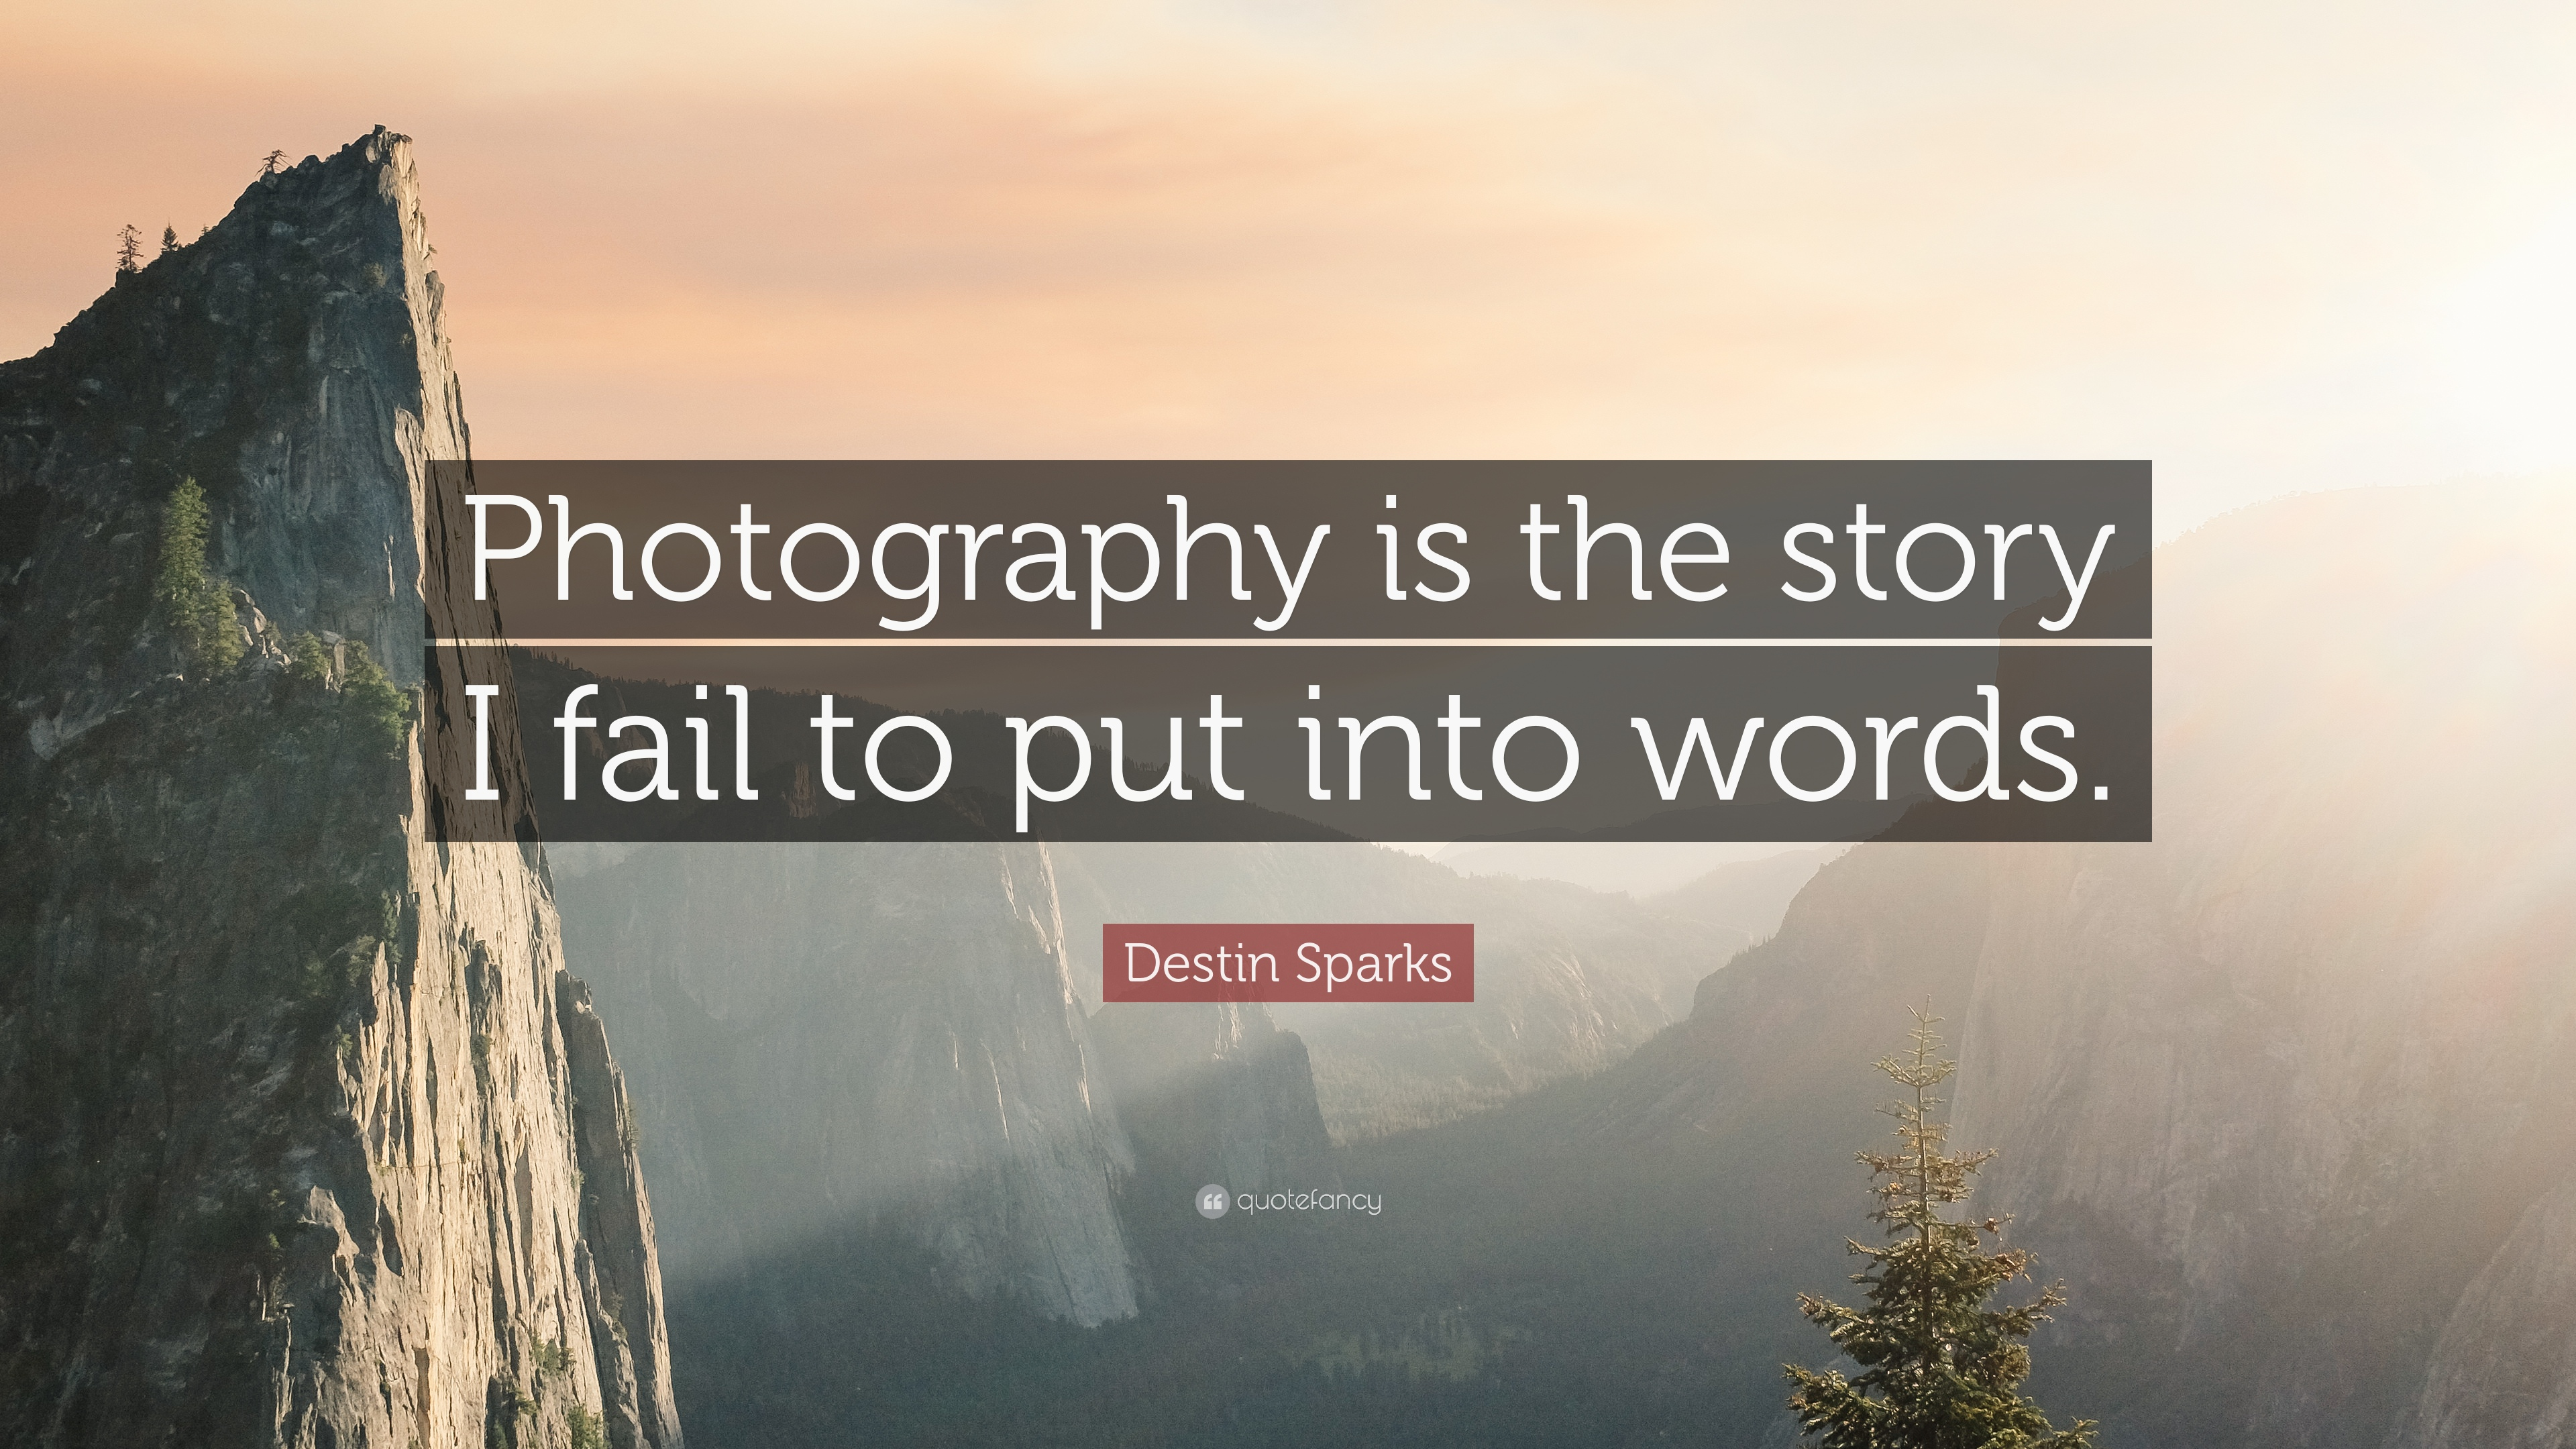 Photography Quotes Prepossessing Photography Quotes 22 Wallpapers  Quotefancy